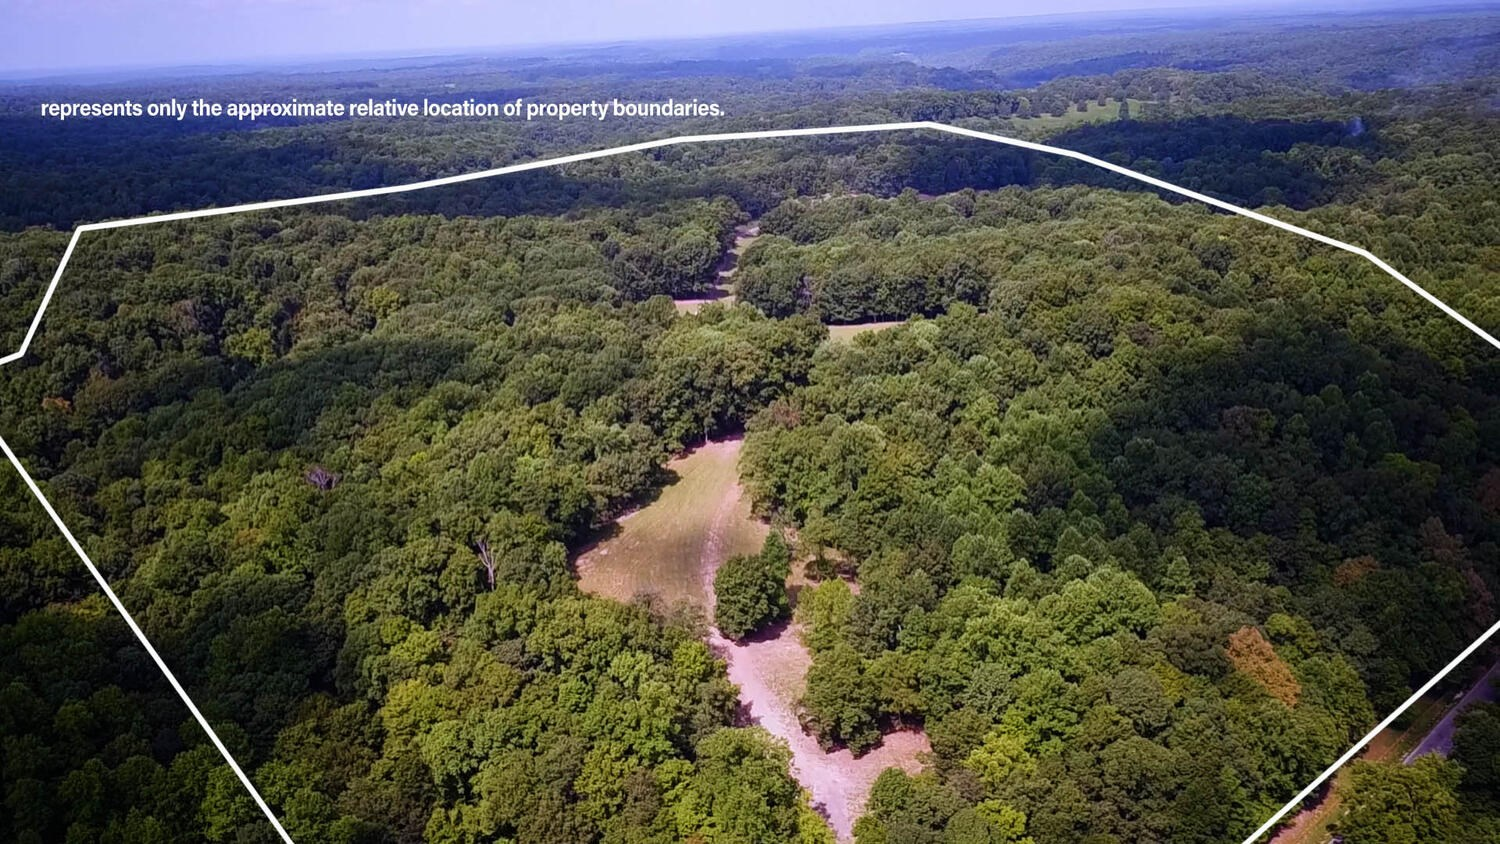 Land For Sale in Santa Fe Tennessee